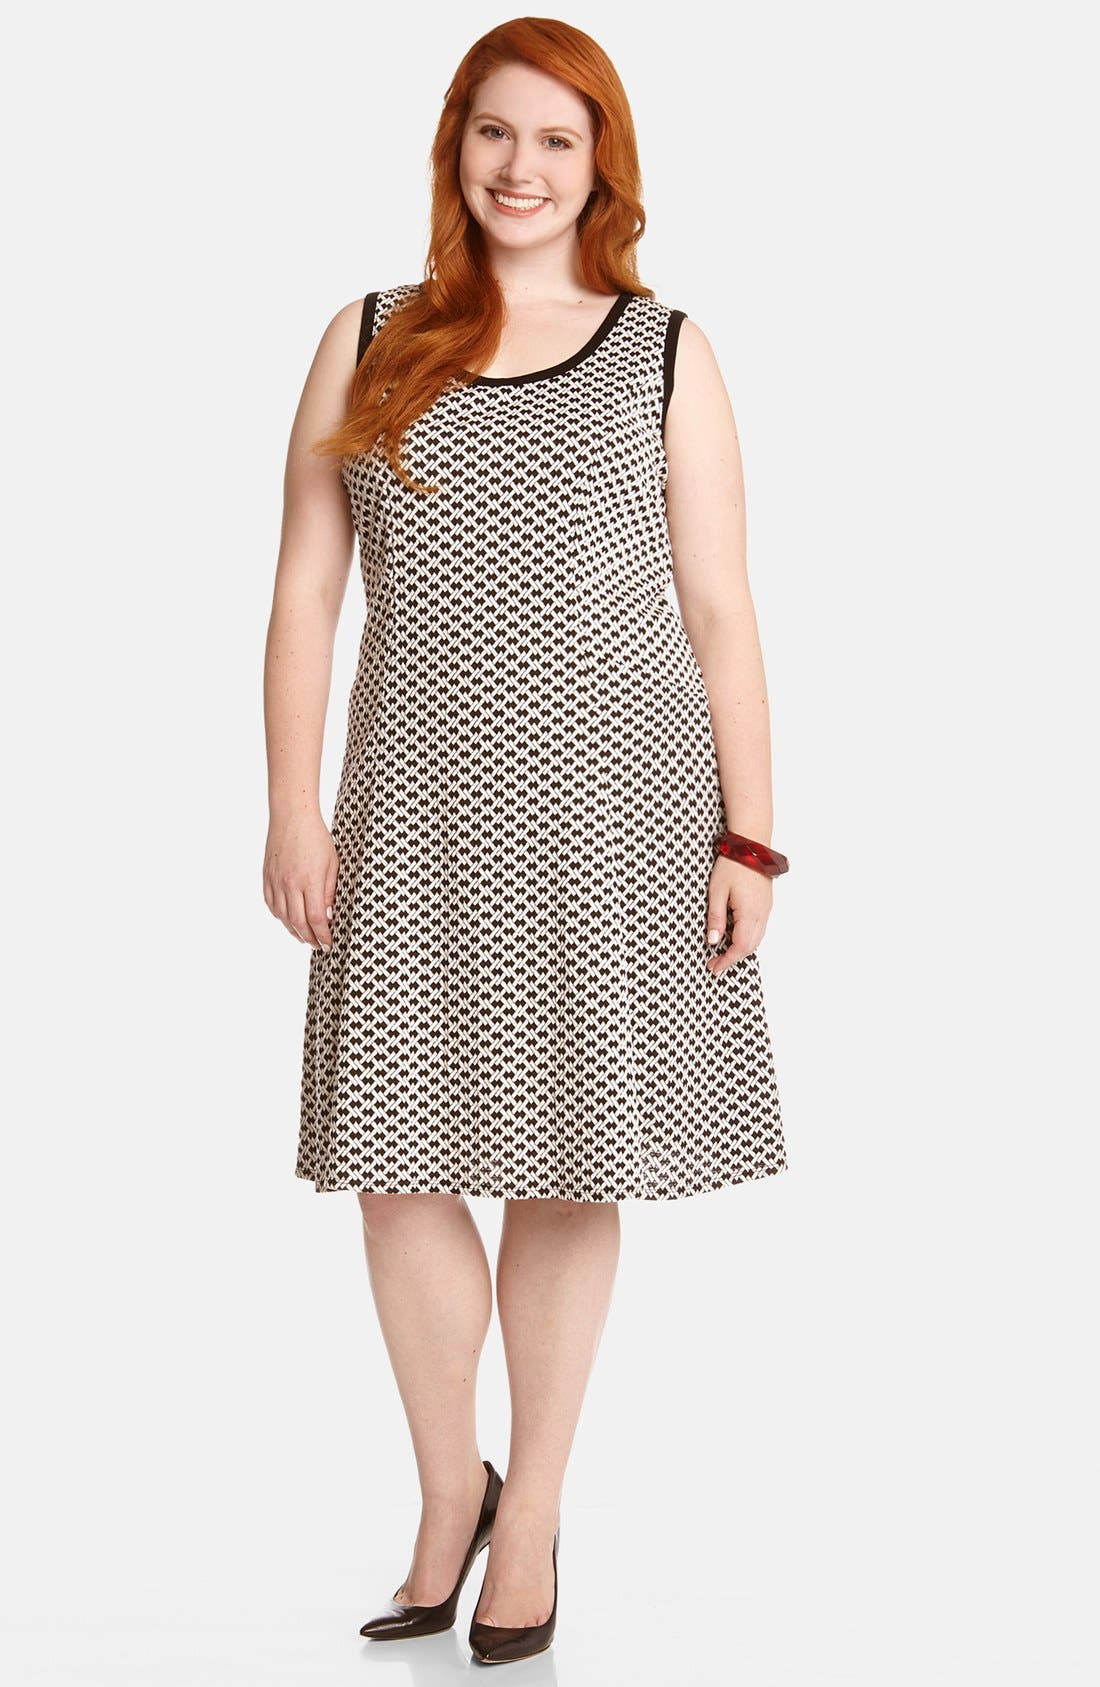 Alternate Image 1 Selected - Karen Kane 'Desert Weave' Fit & Flare Dress (Plus Size)